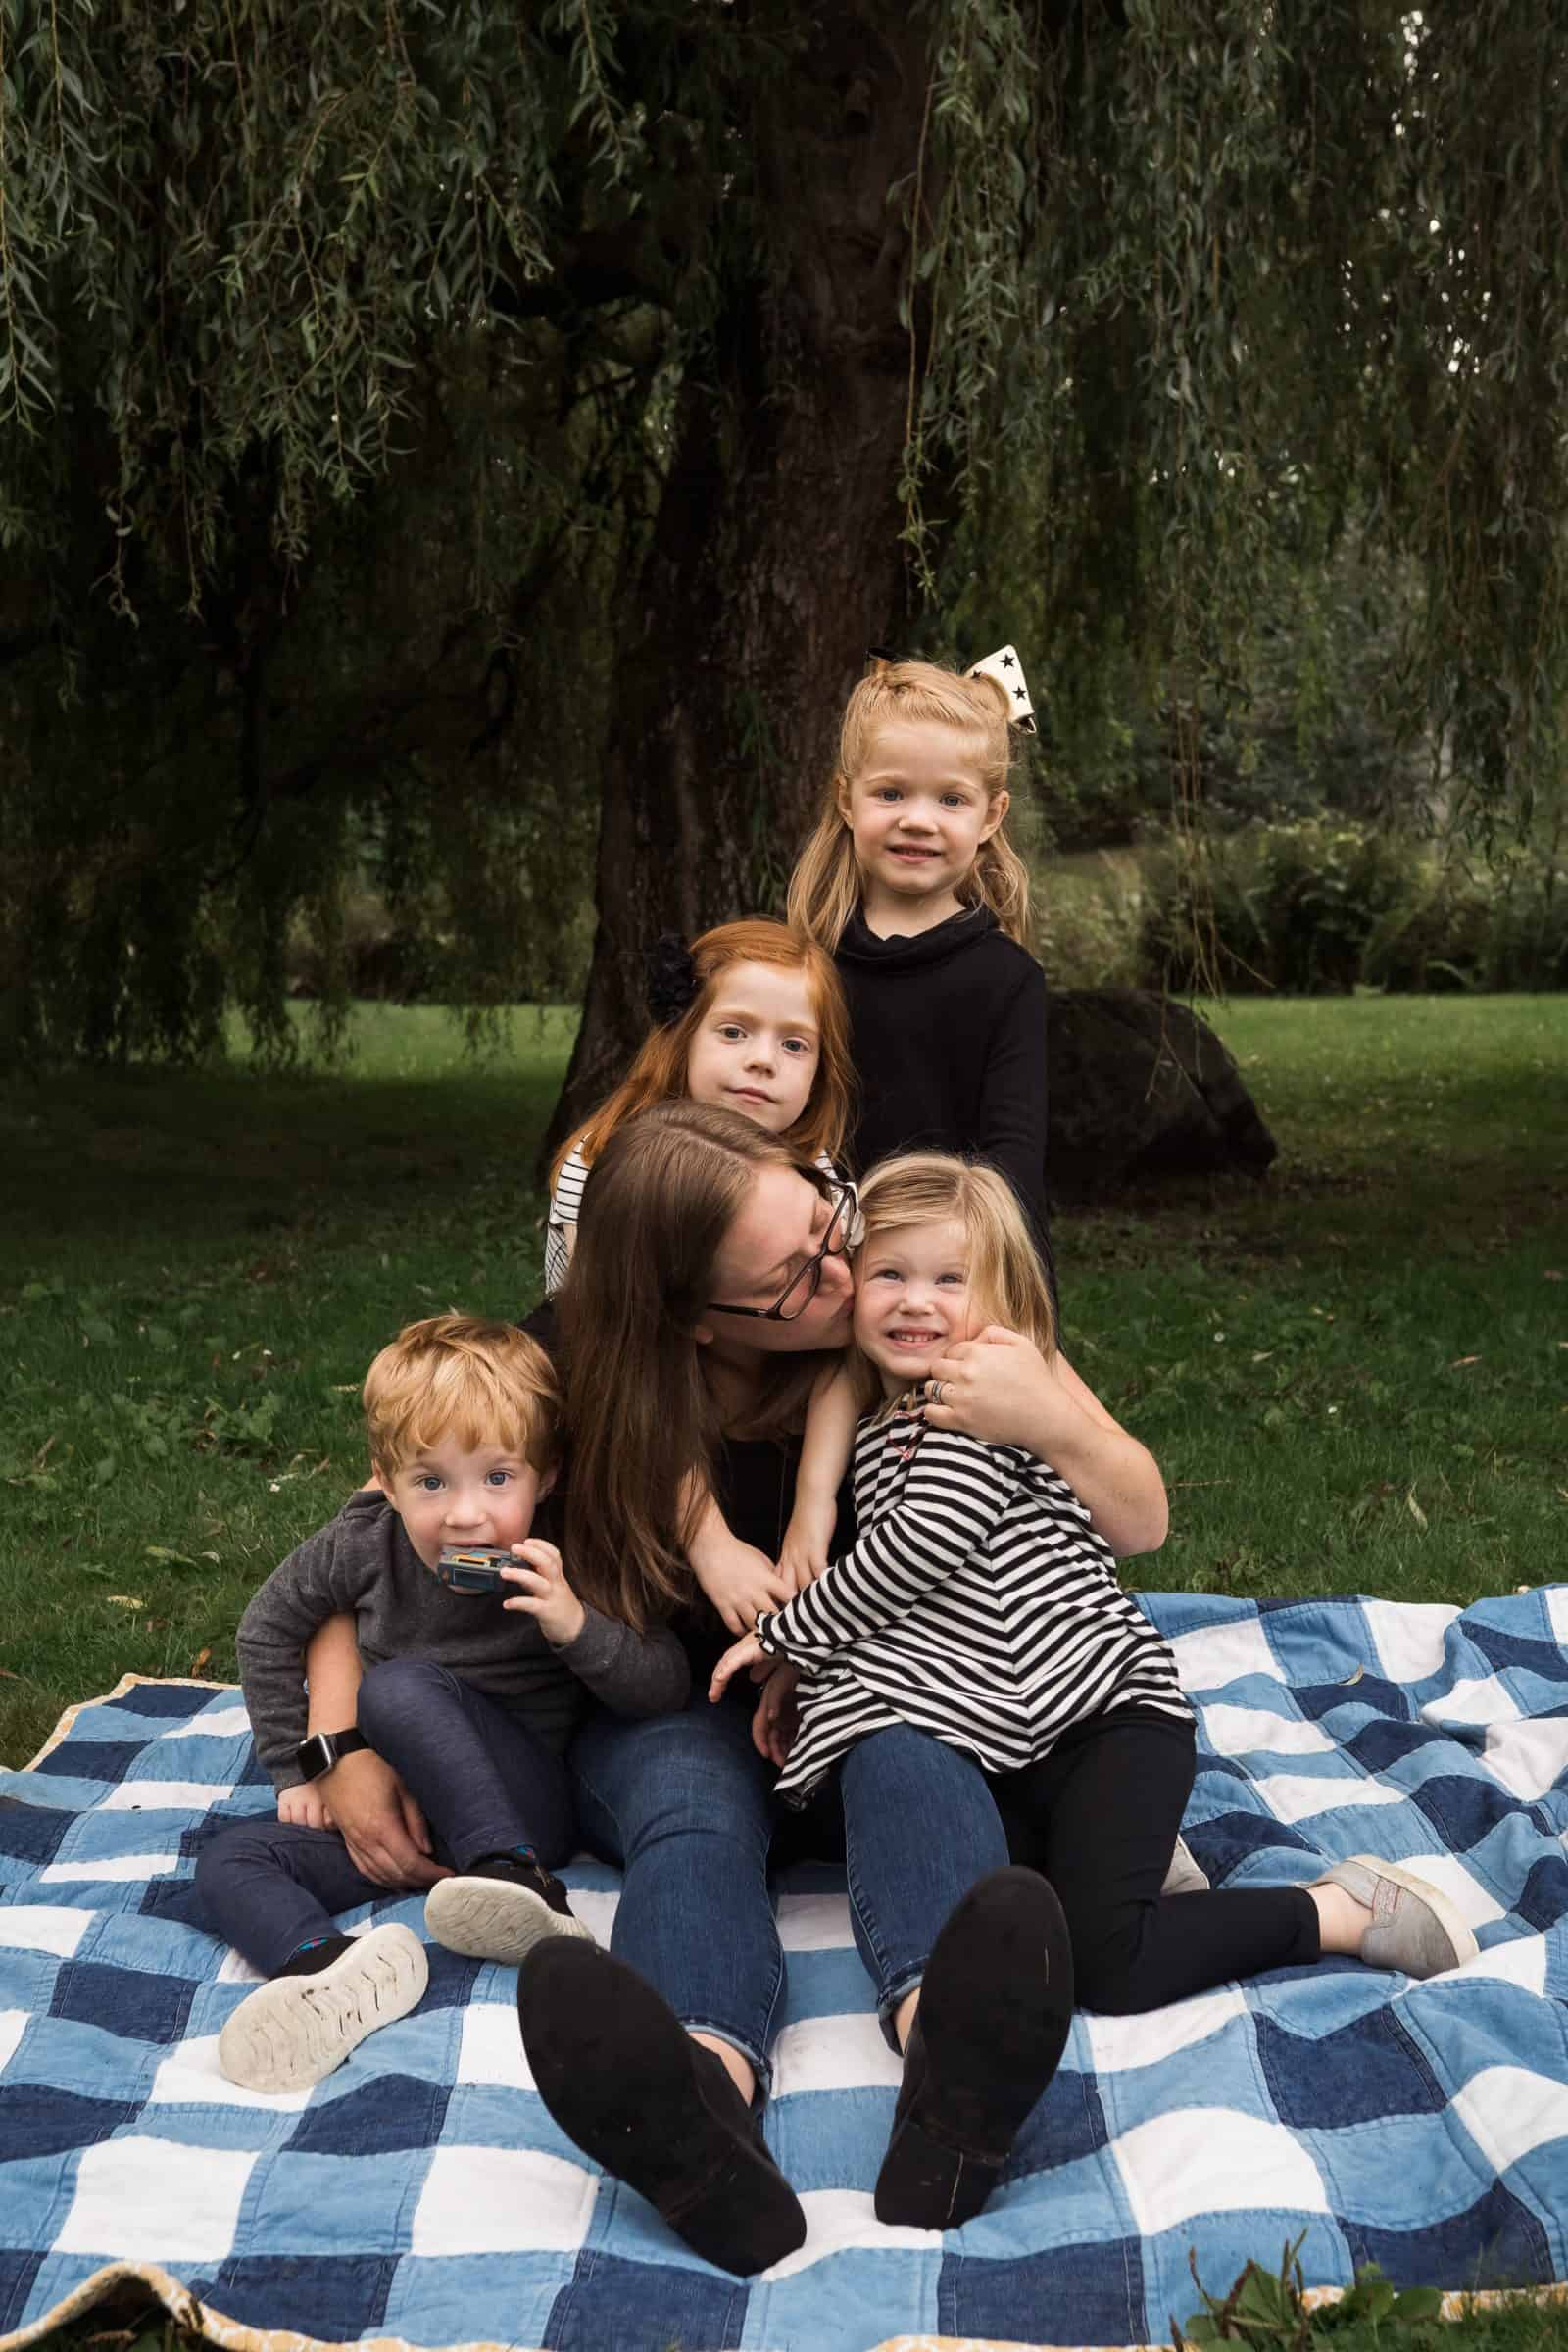 mom sitting on blacket with two girls and toddler boy-girl twins and snuggling them